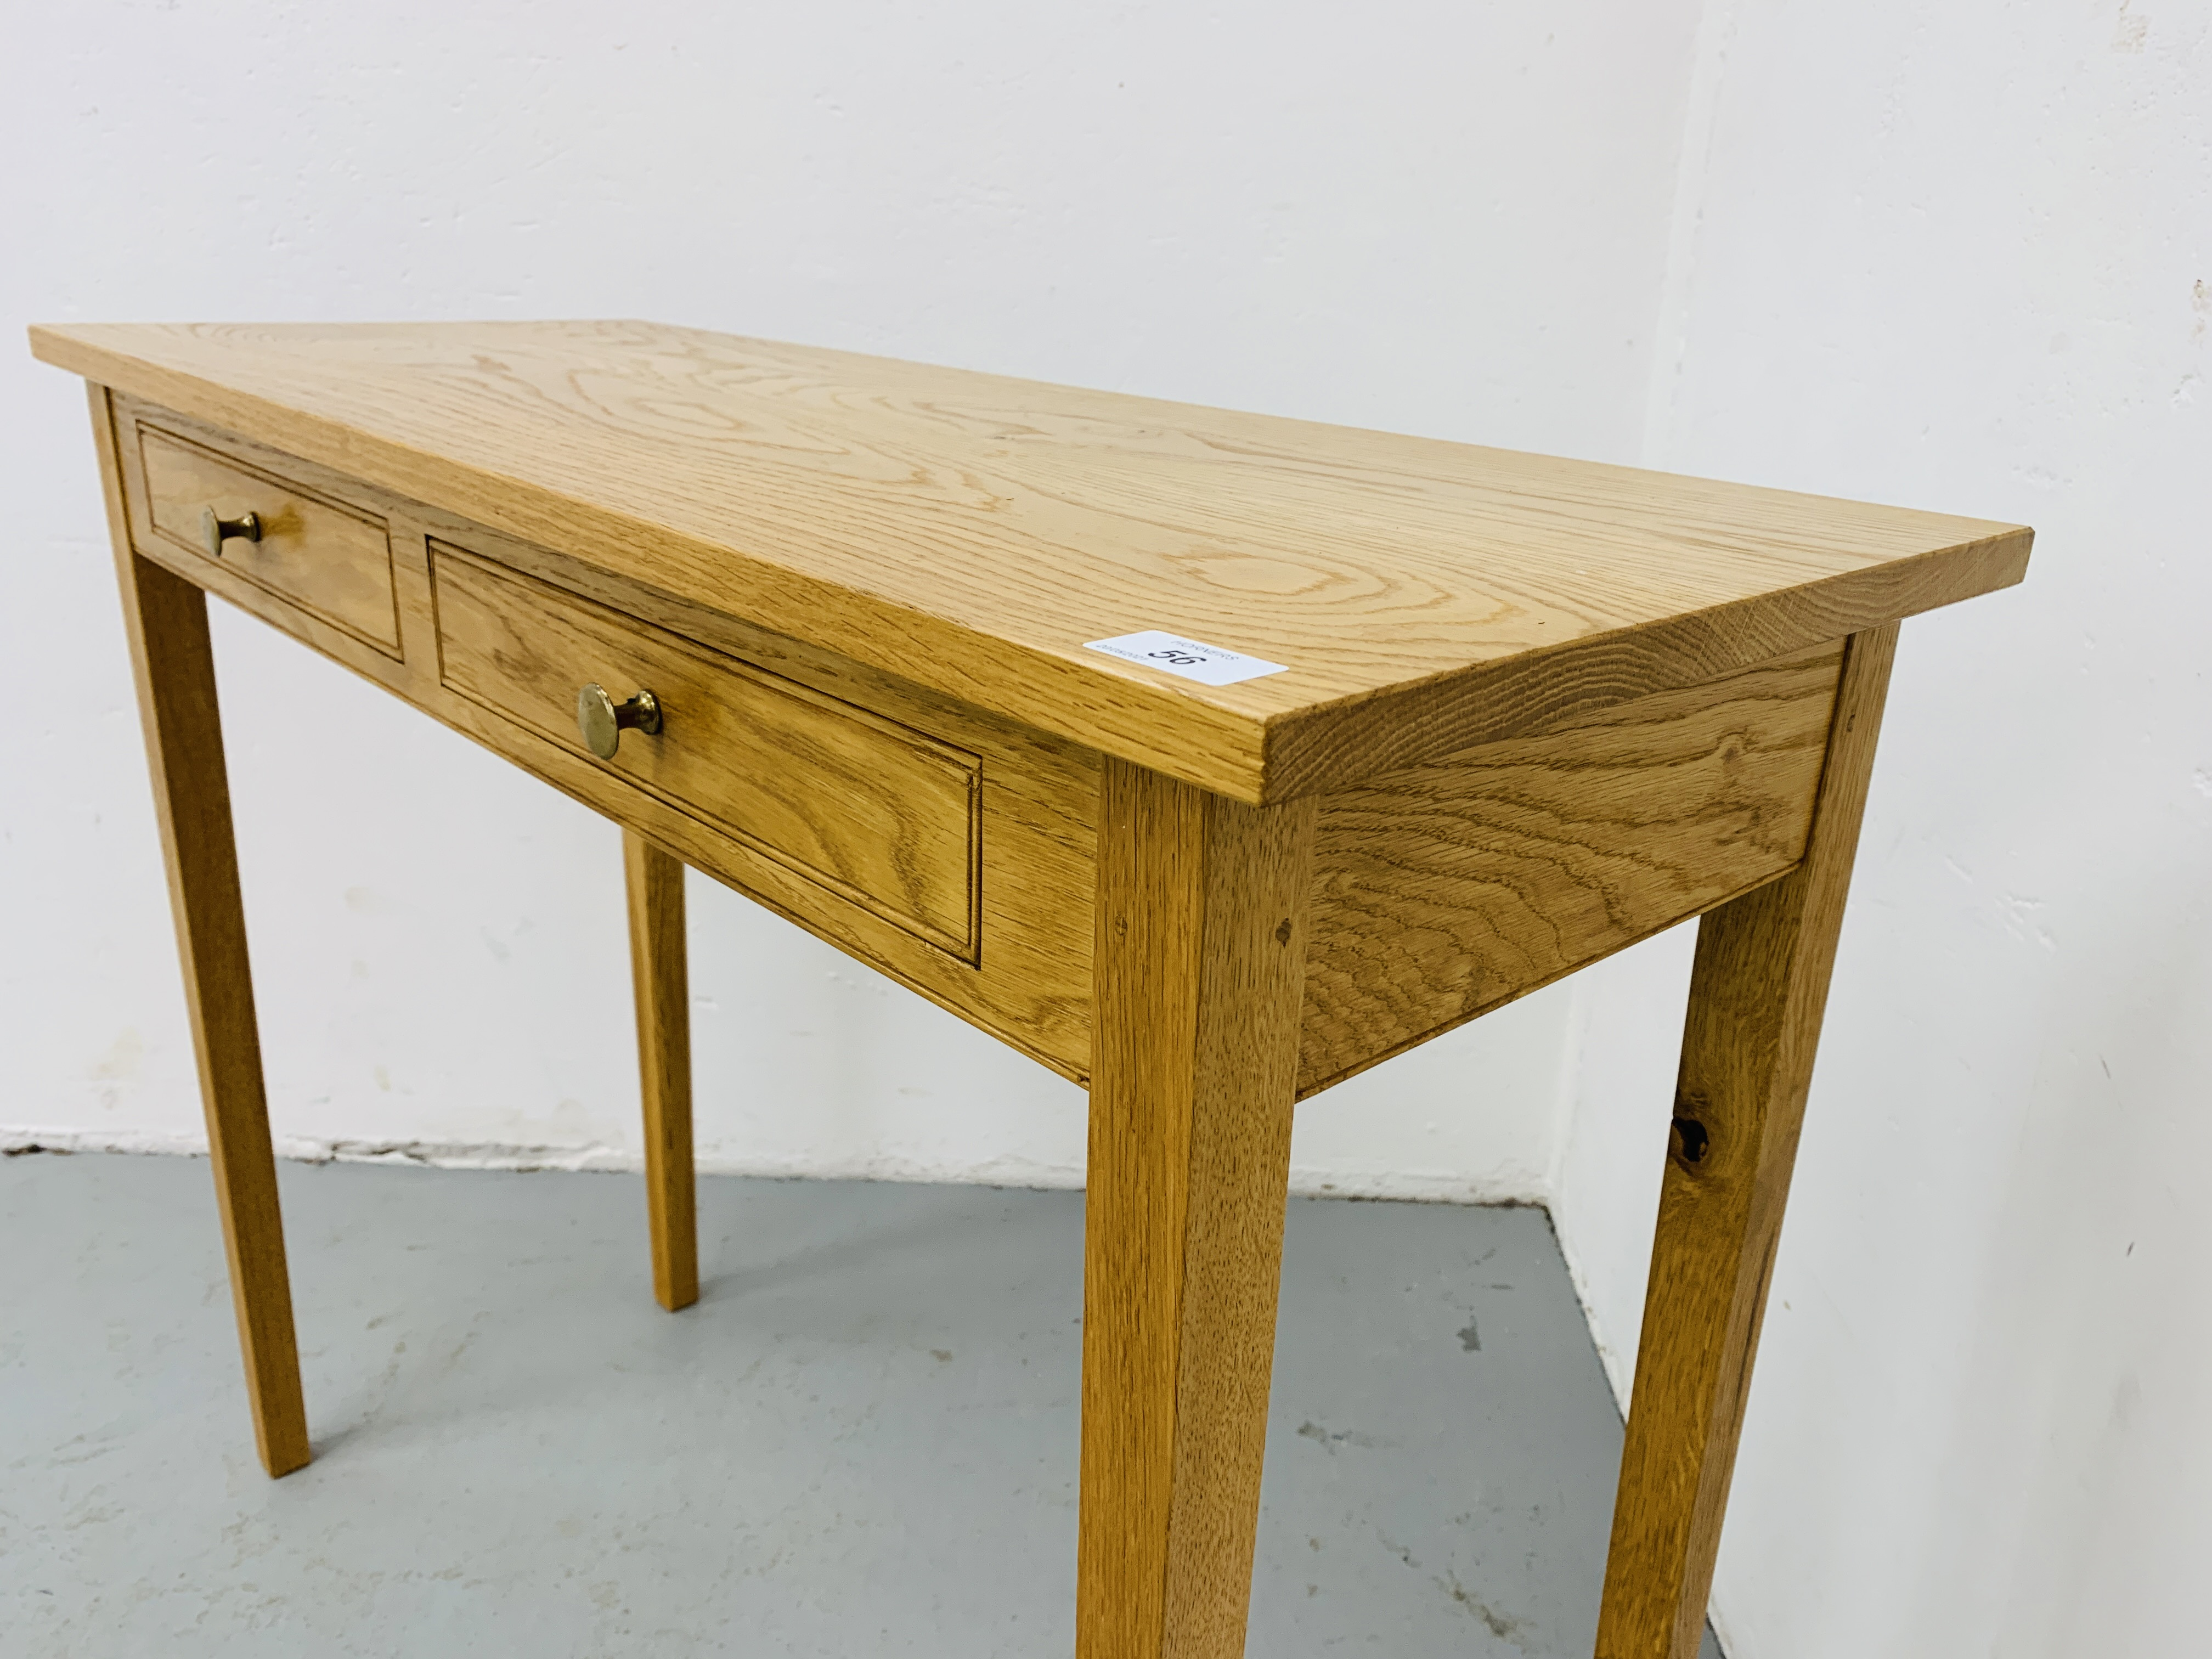 A SMALL LIGHT OAK TWO DRAWER SIDE TABLE 85CM X 34CM - Image 5 of 7